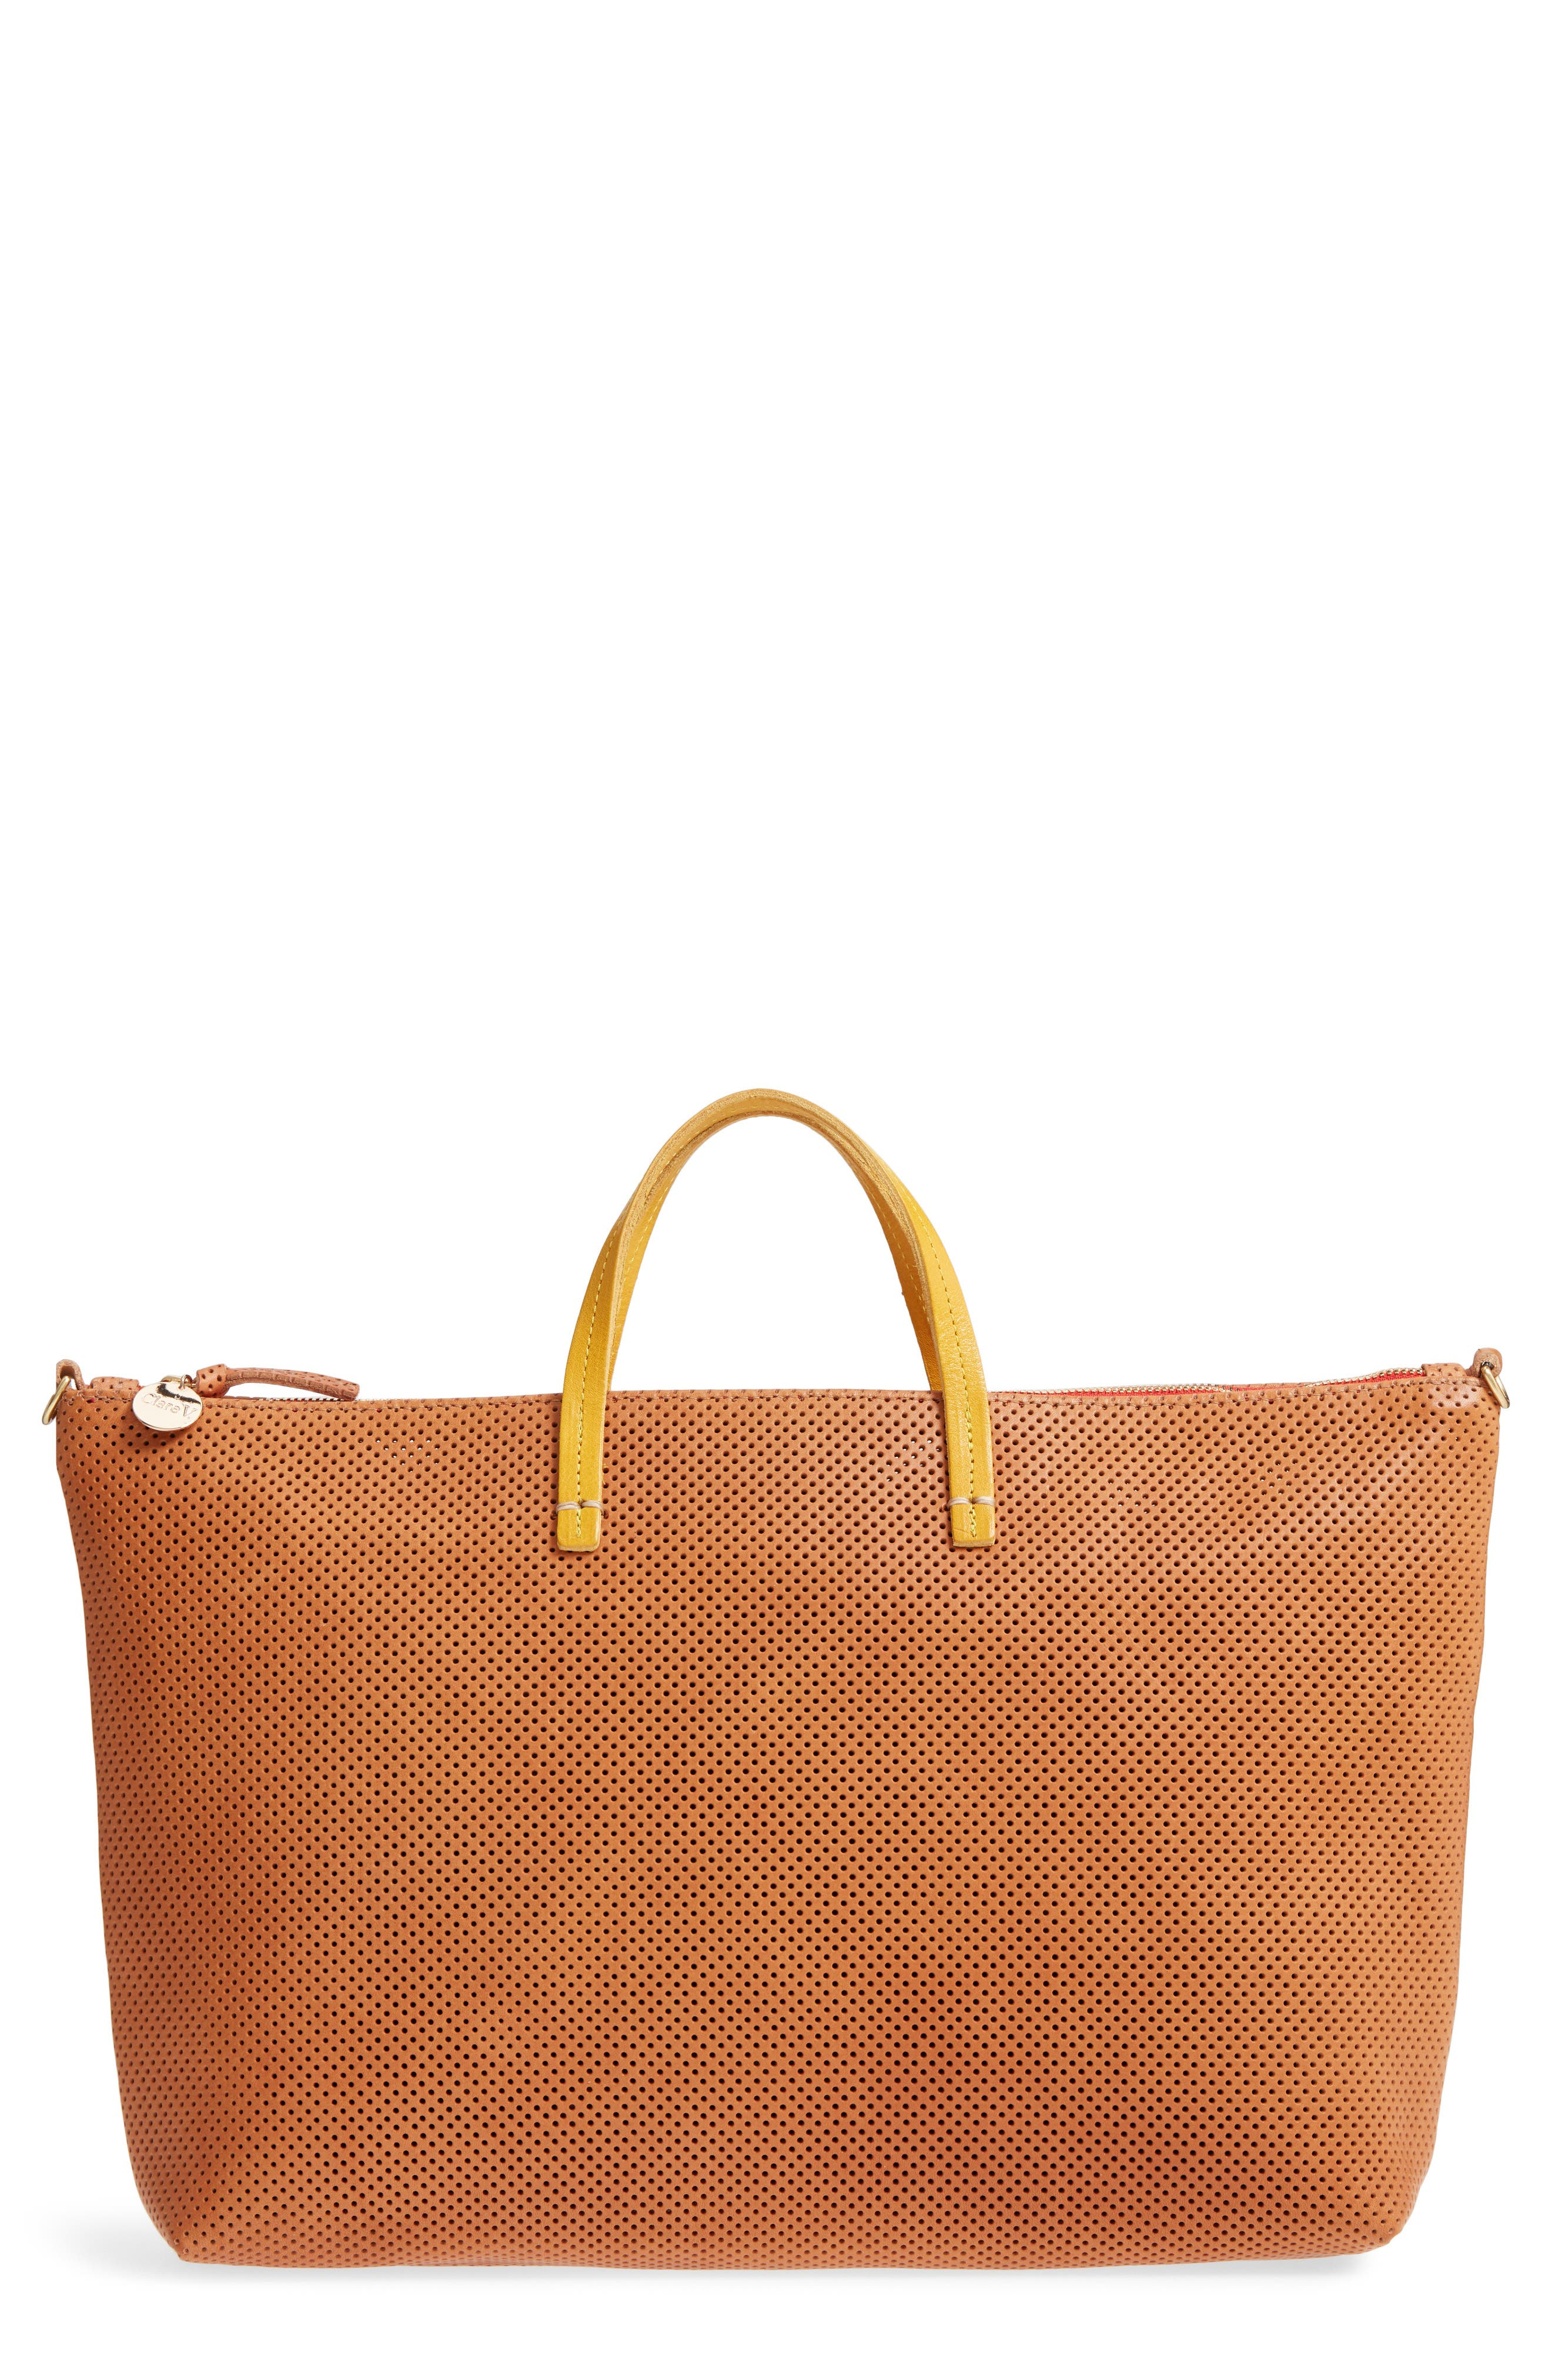 Perforated Leather Tote,                         Main,                         color, 200